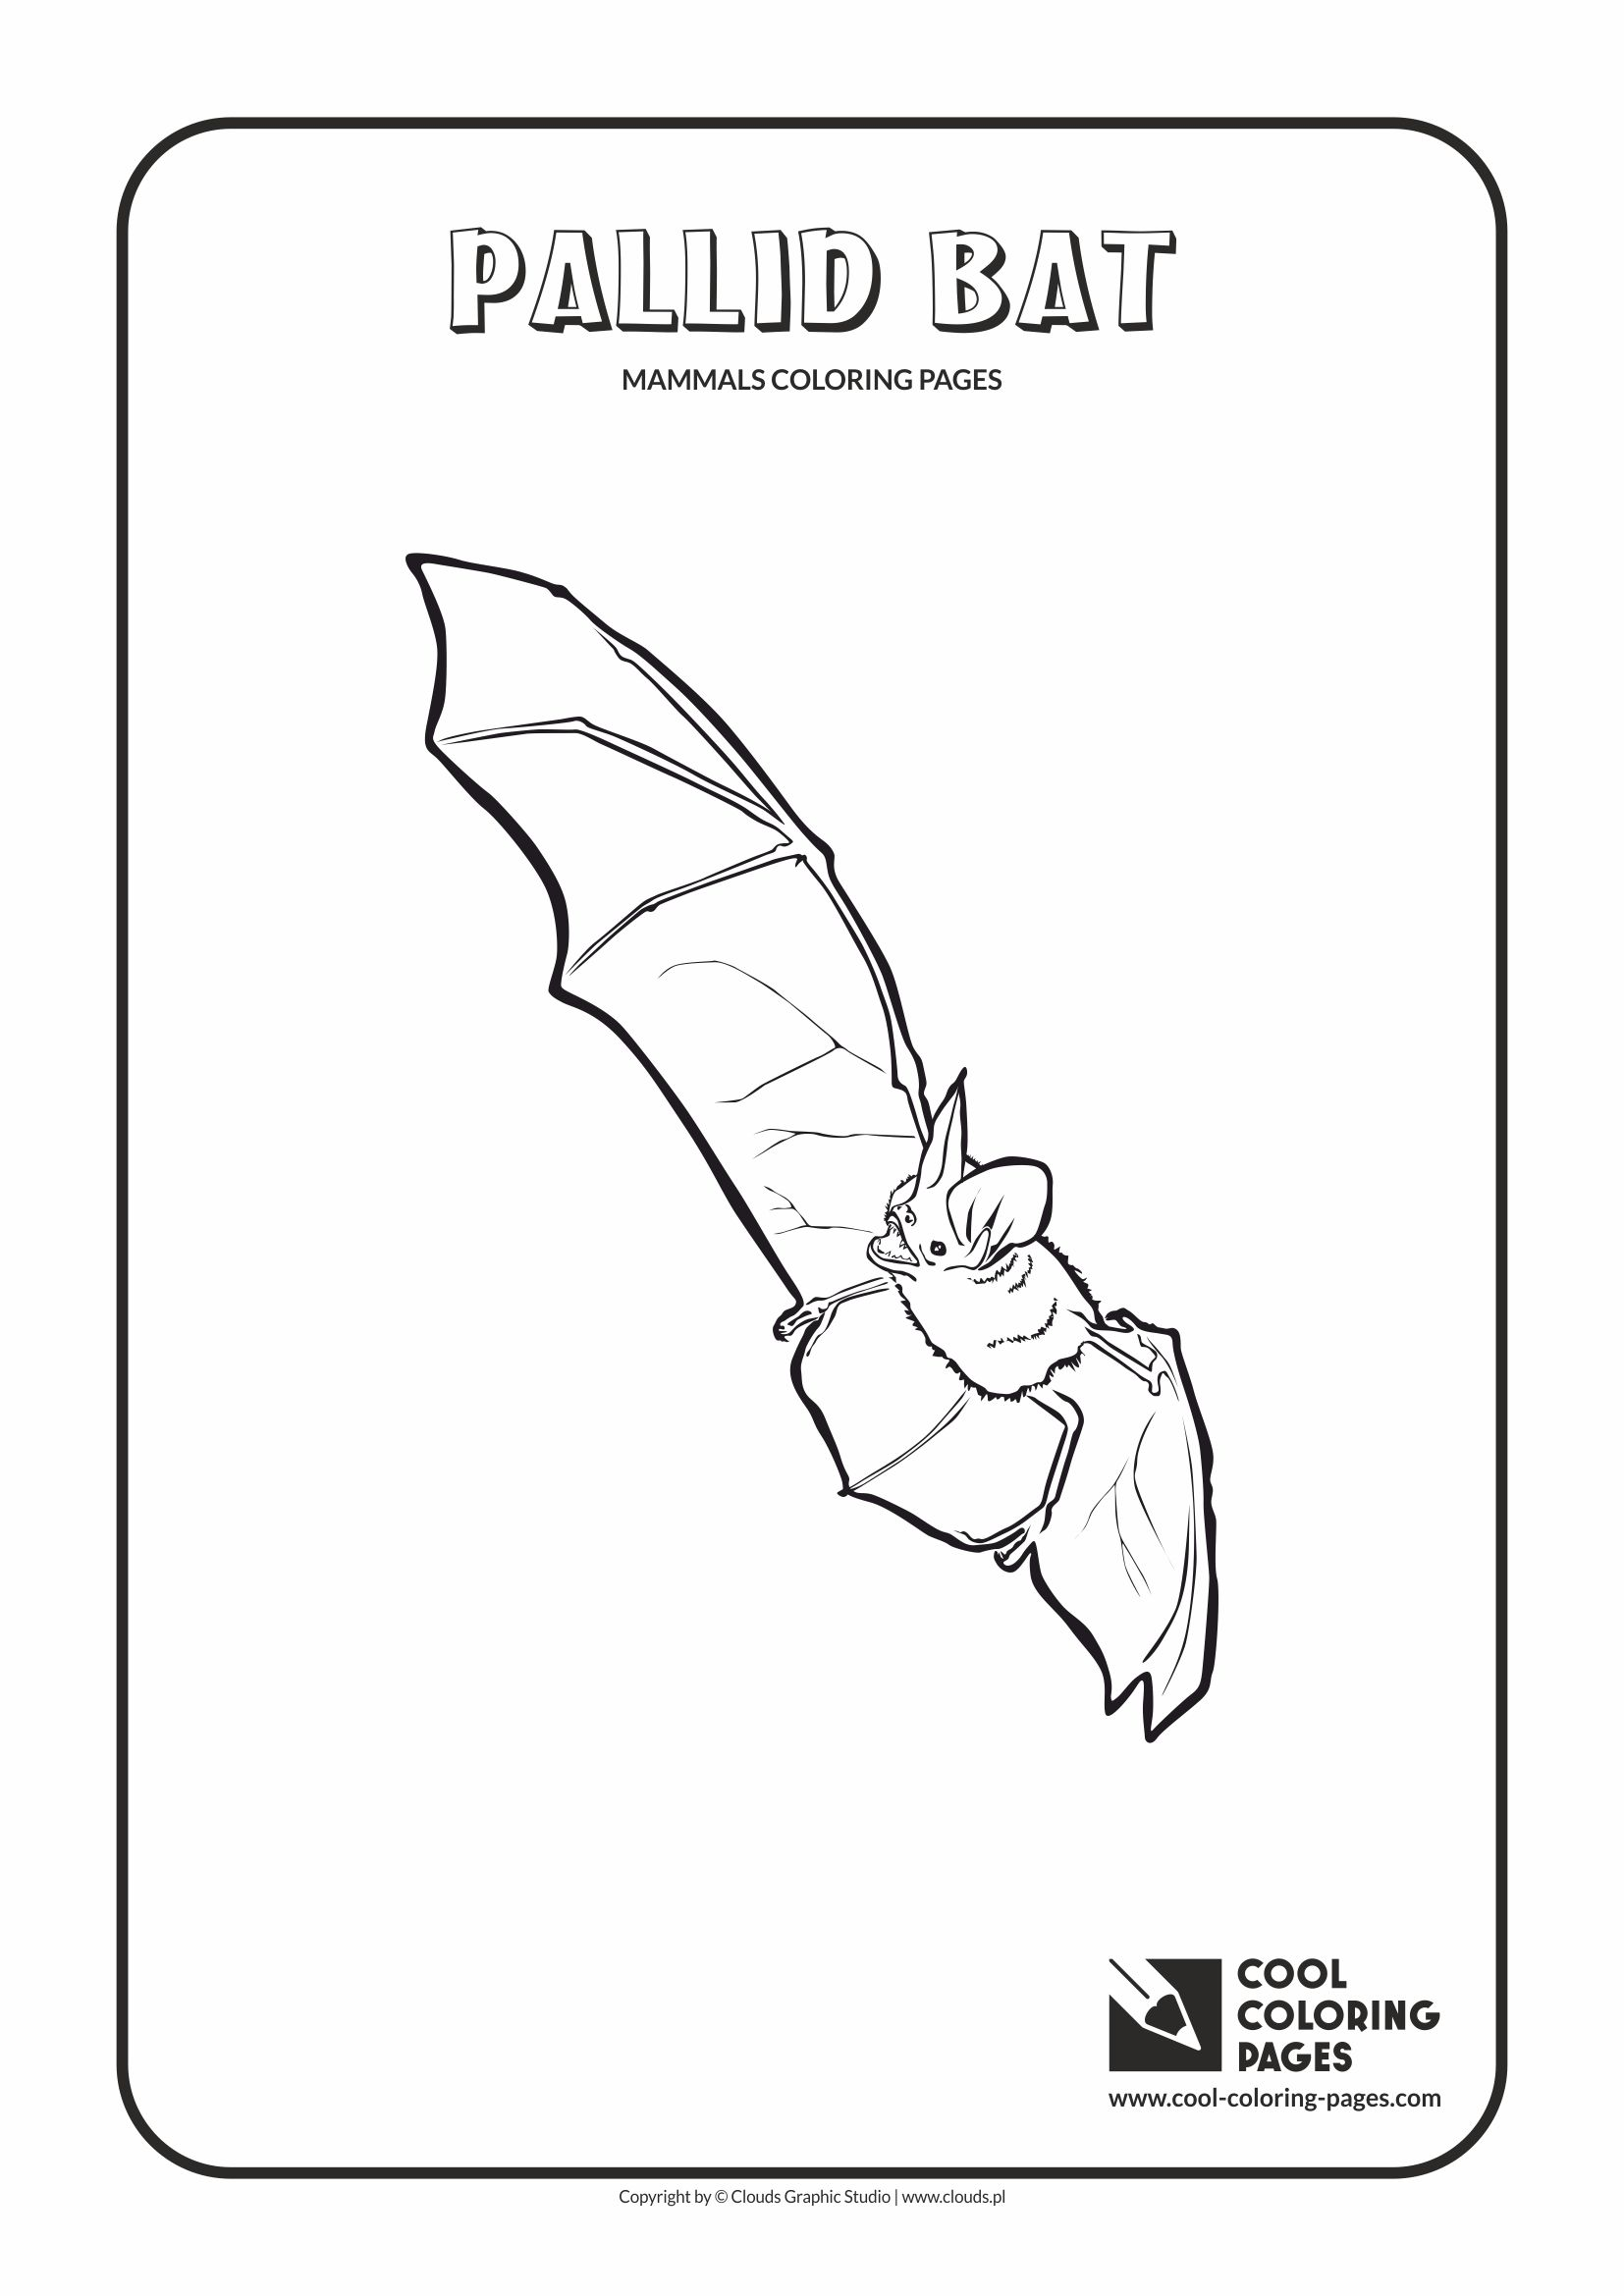 Cool Coloring Pages - Animals / Pallid bat / Coloring page with pallid bat